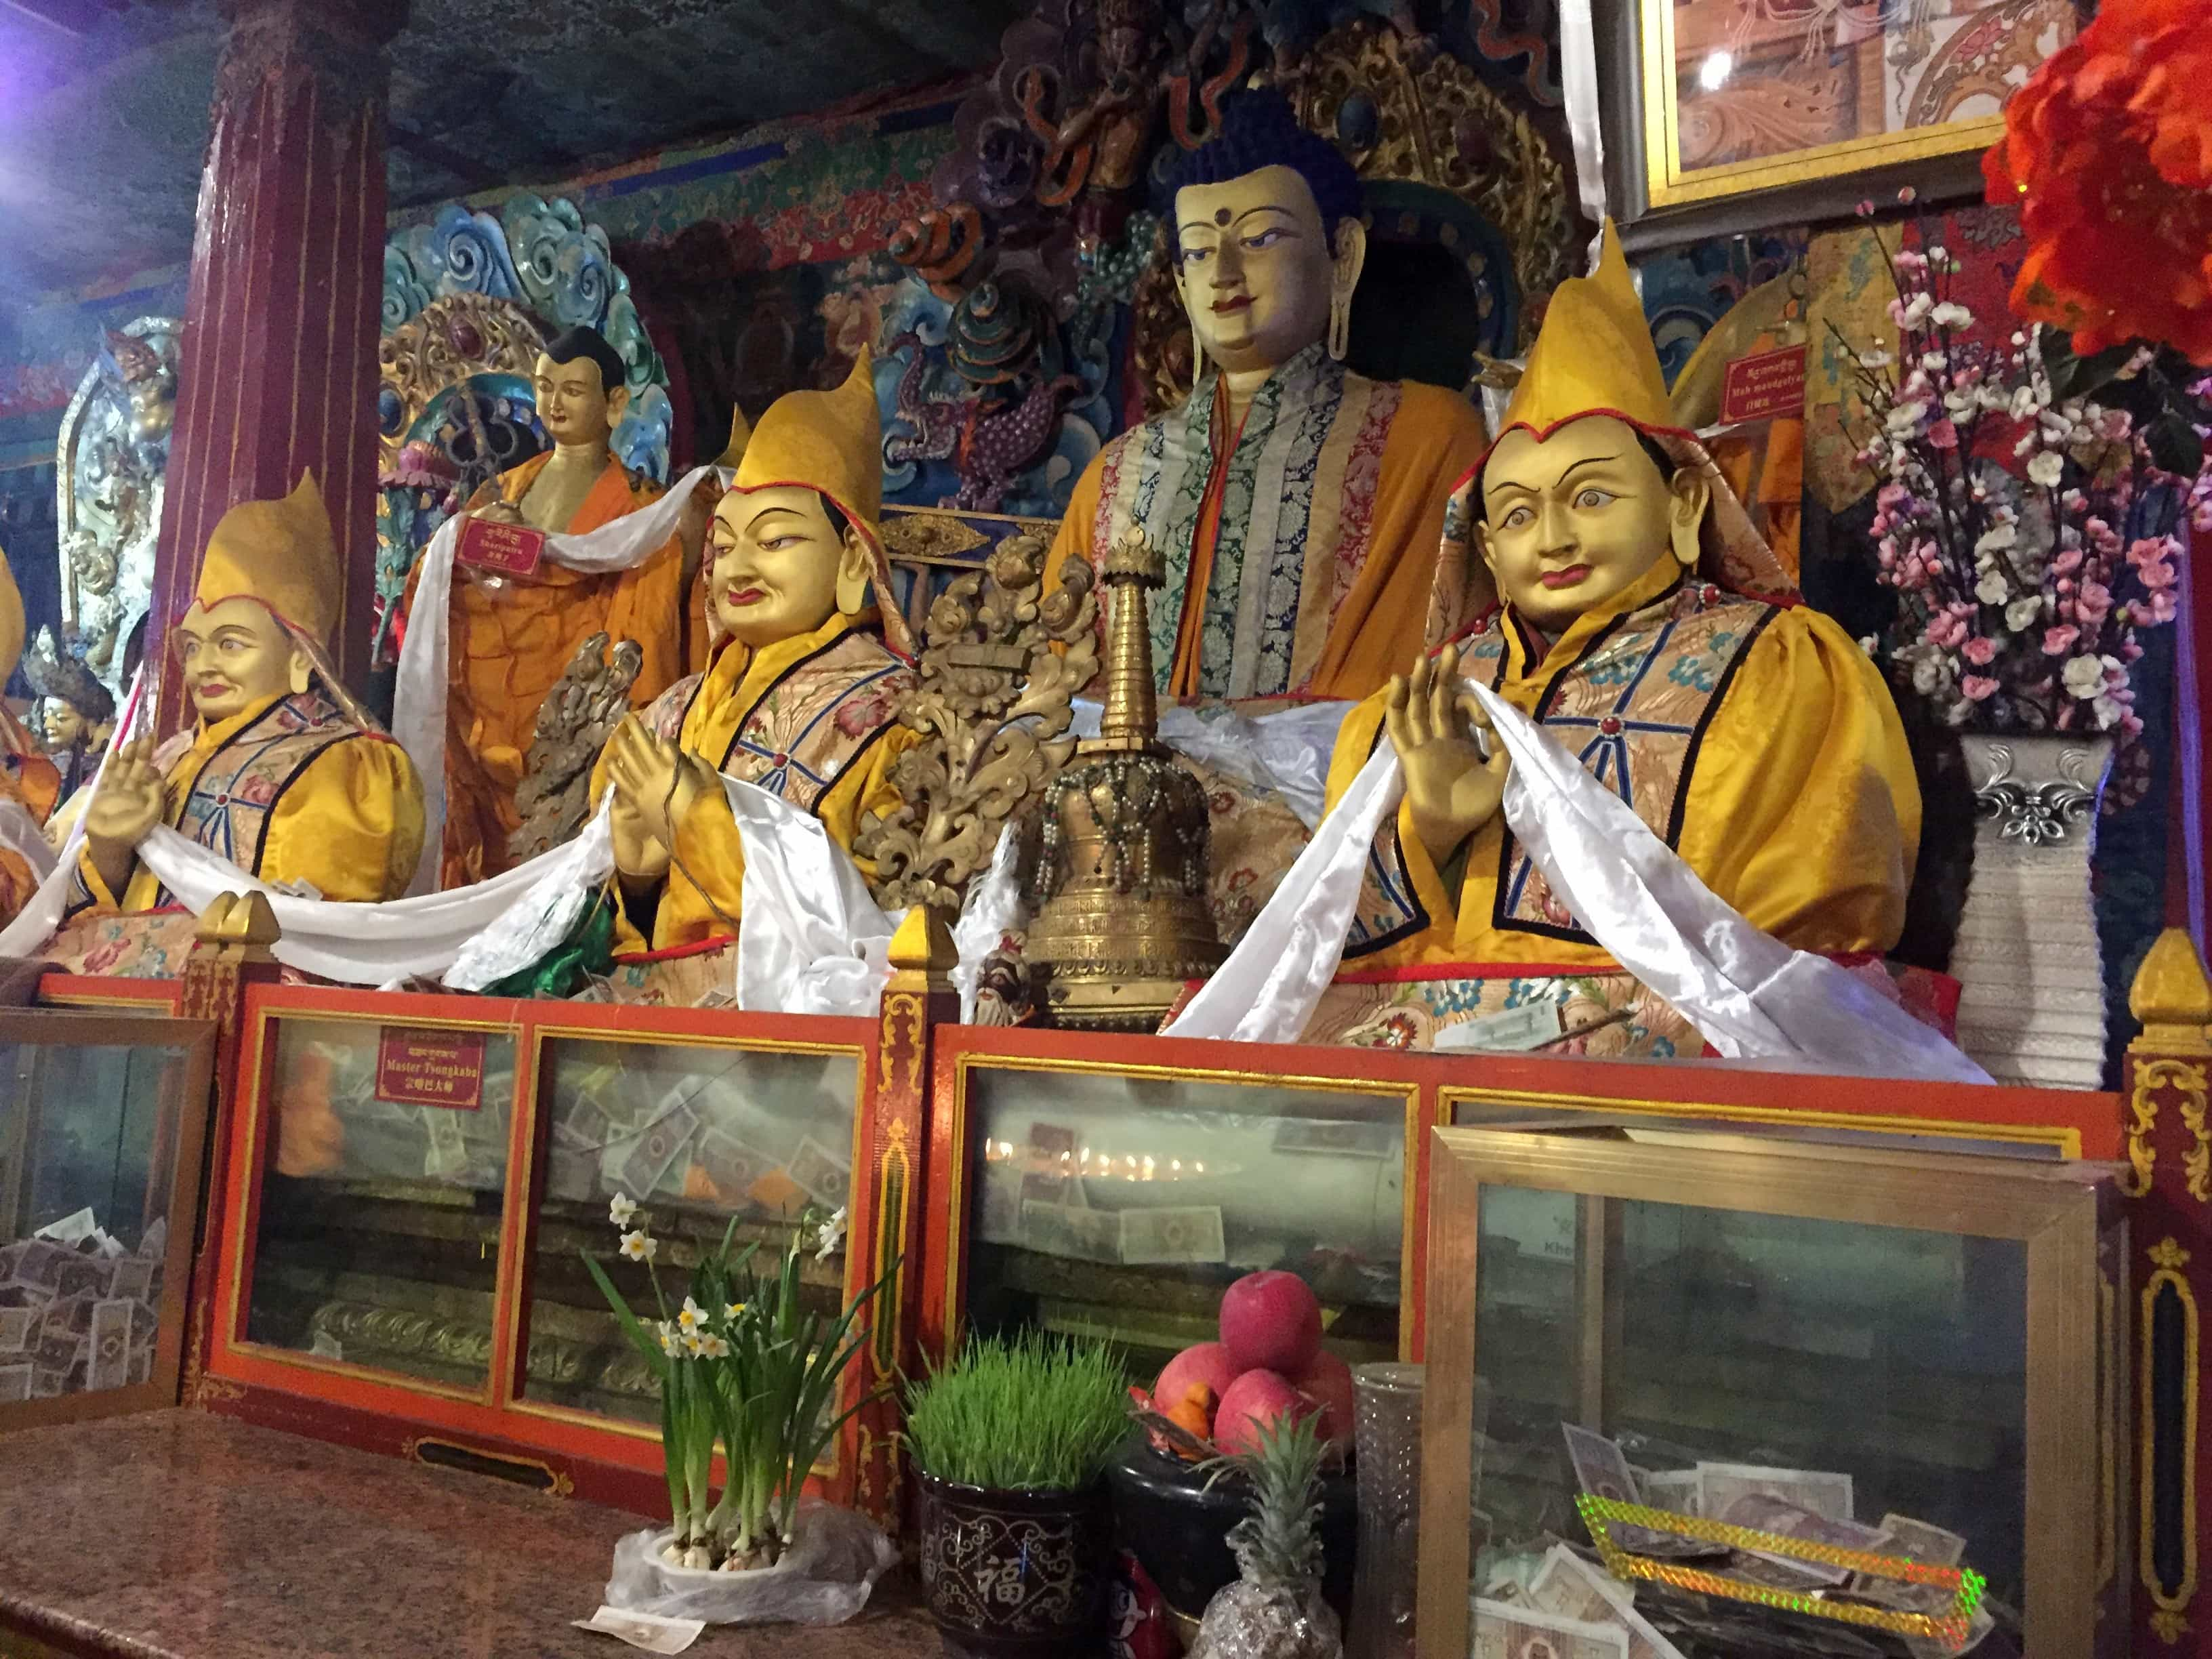 Statues of Tsongkhapa and his two disciples in Sera monastery